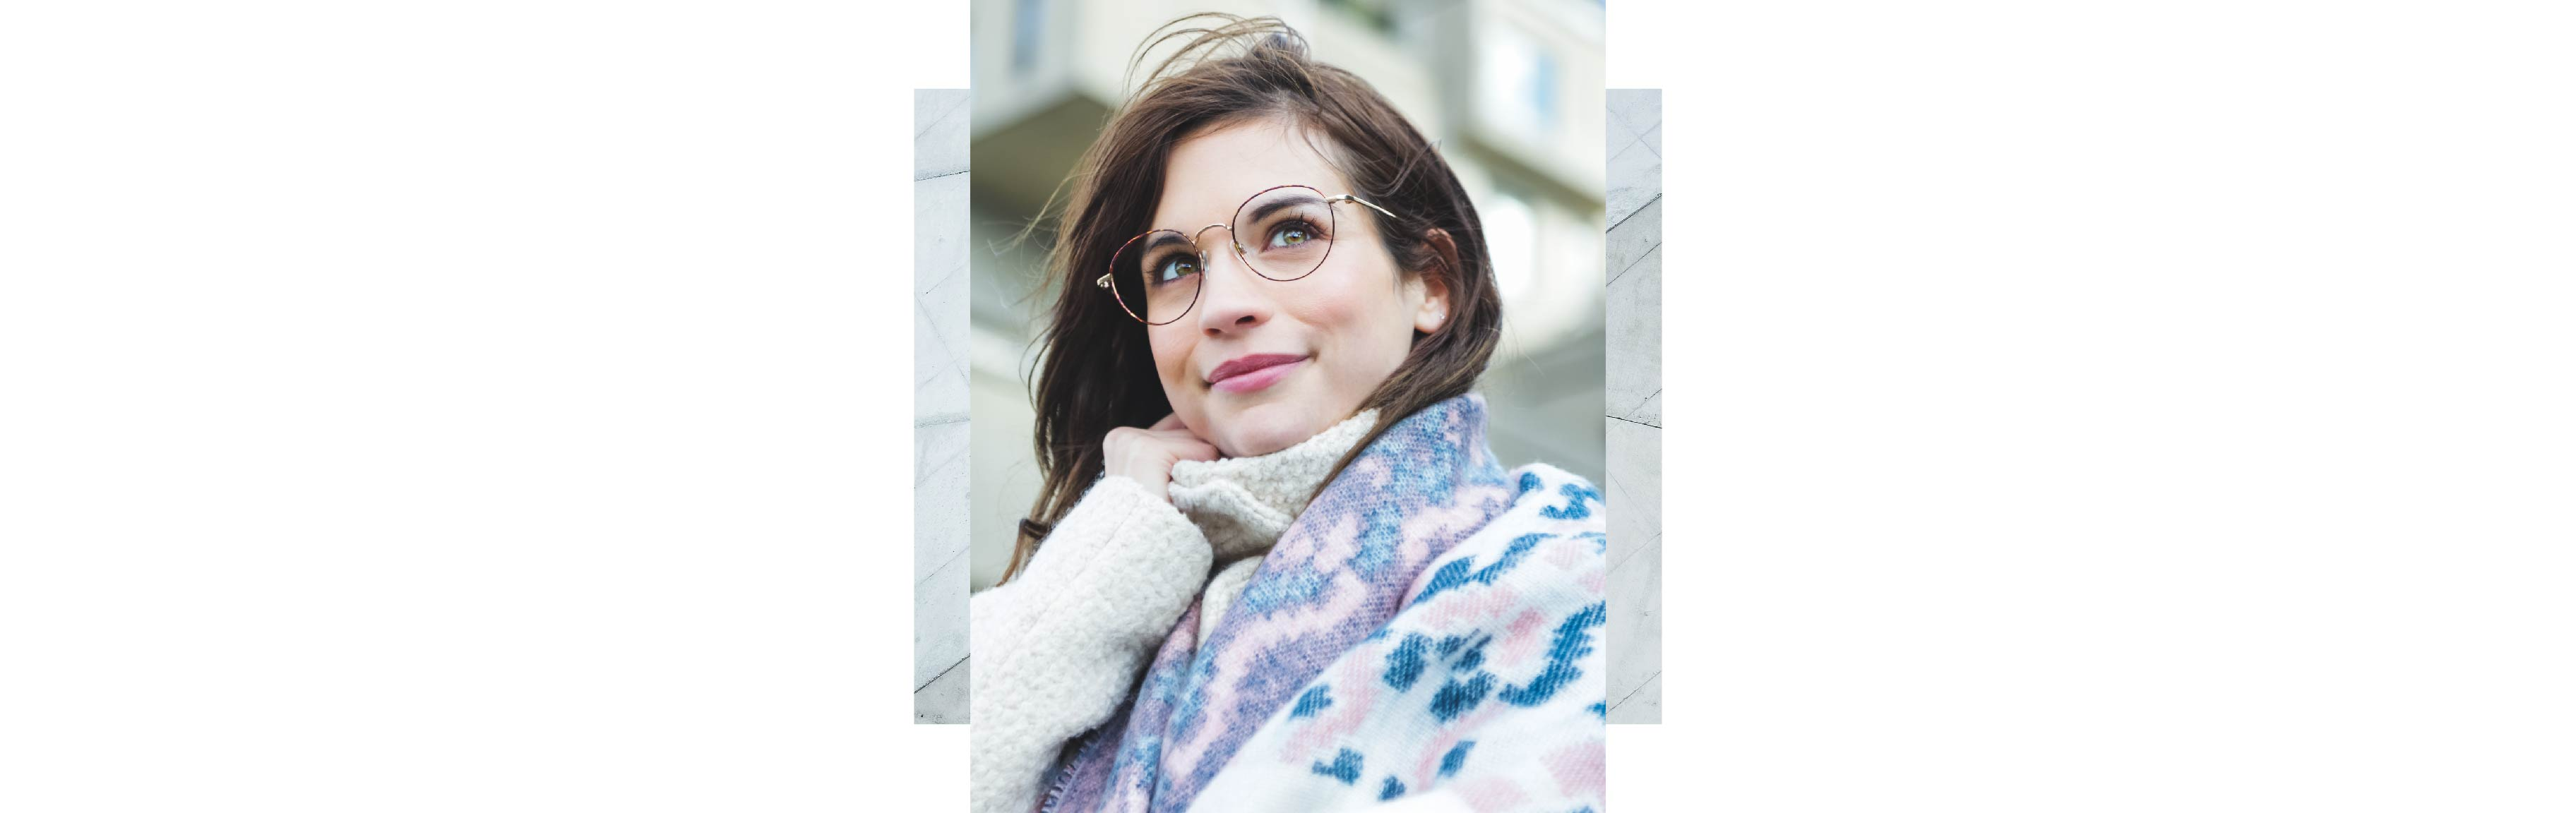 A young woman wearing Charmant_CH11466U frames